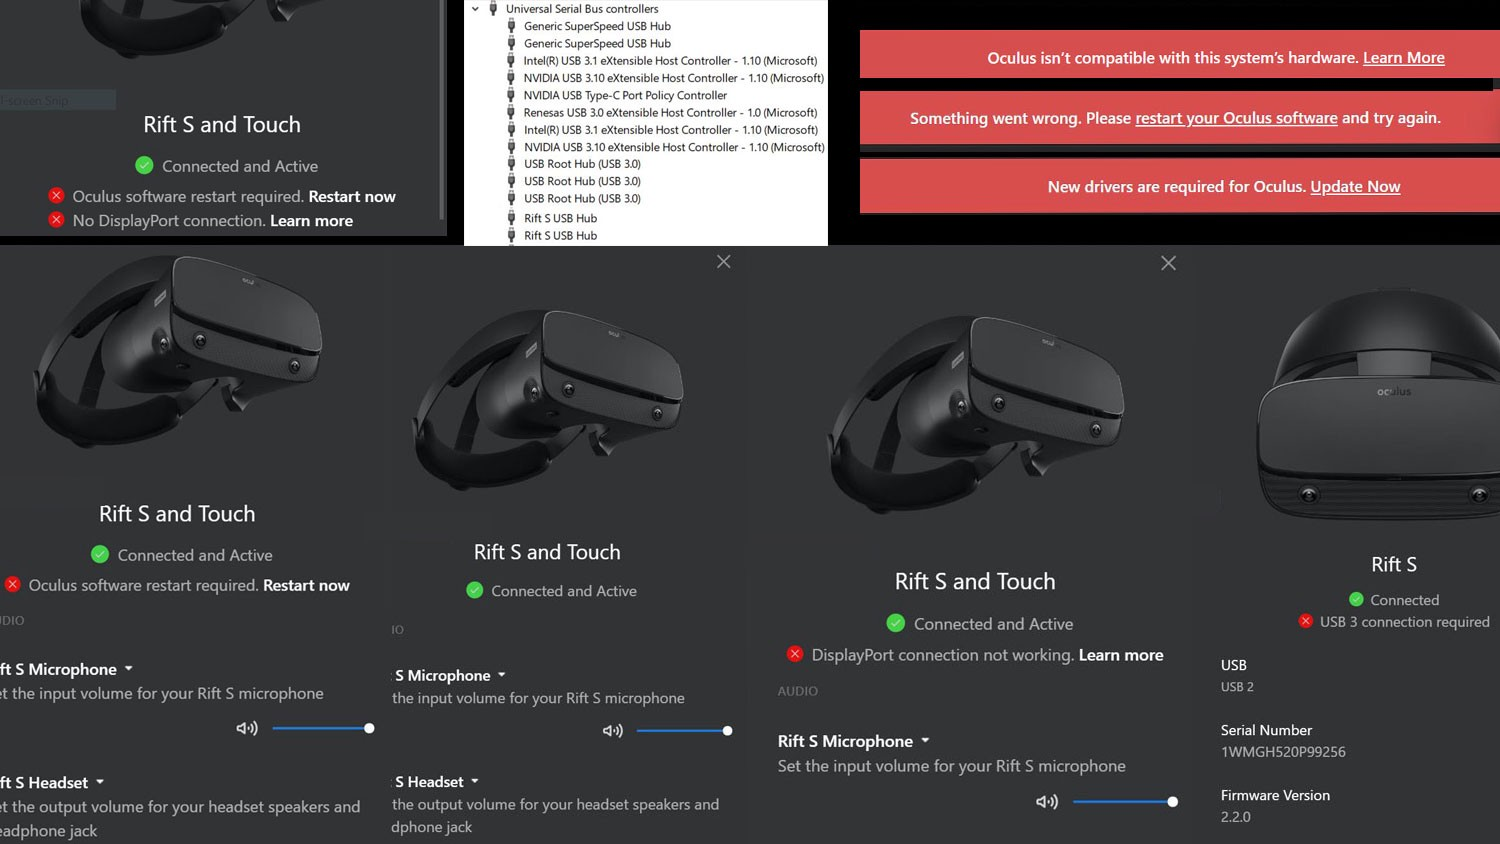 Oculus Rift S: how Oculus bricked thousands of headsets this